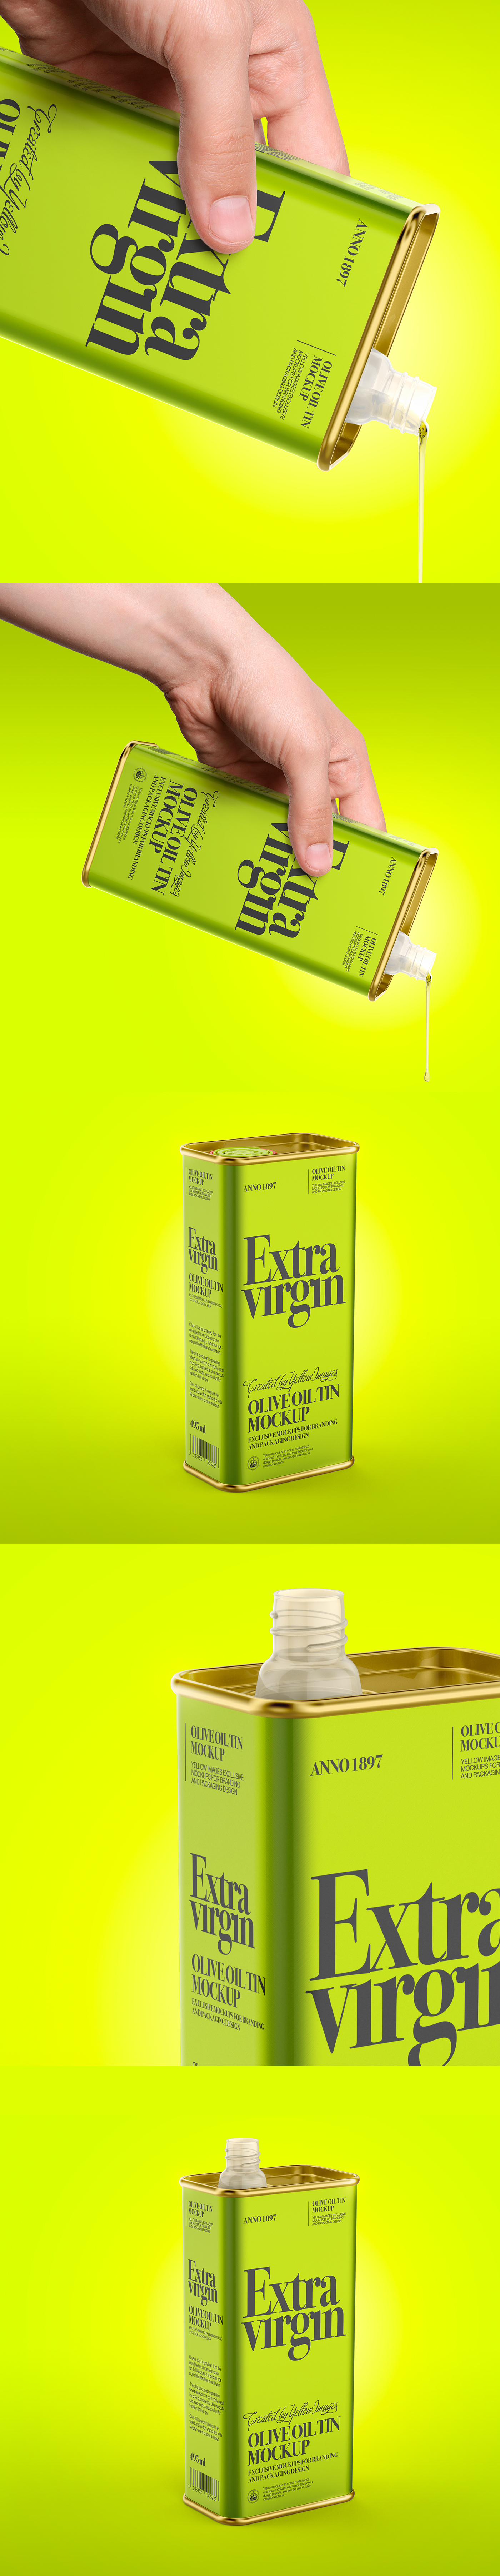 Download Olive Oil Tin Can Mockup In Packaging Mockups On Yellow Images Creative Store PSD Mockup Templates